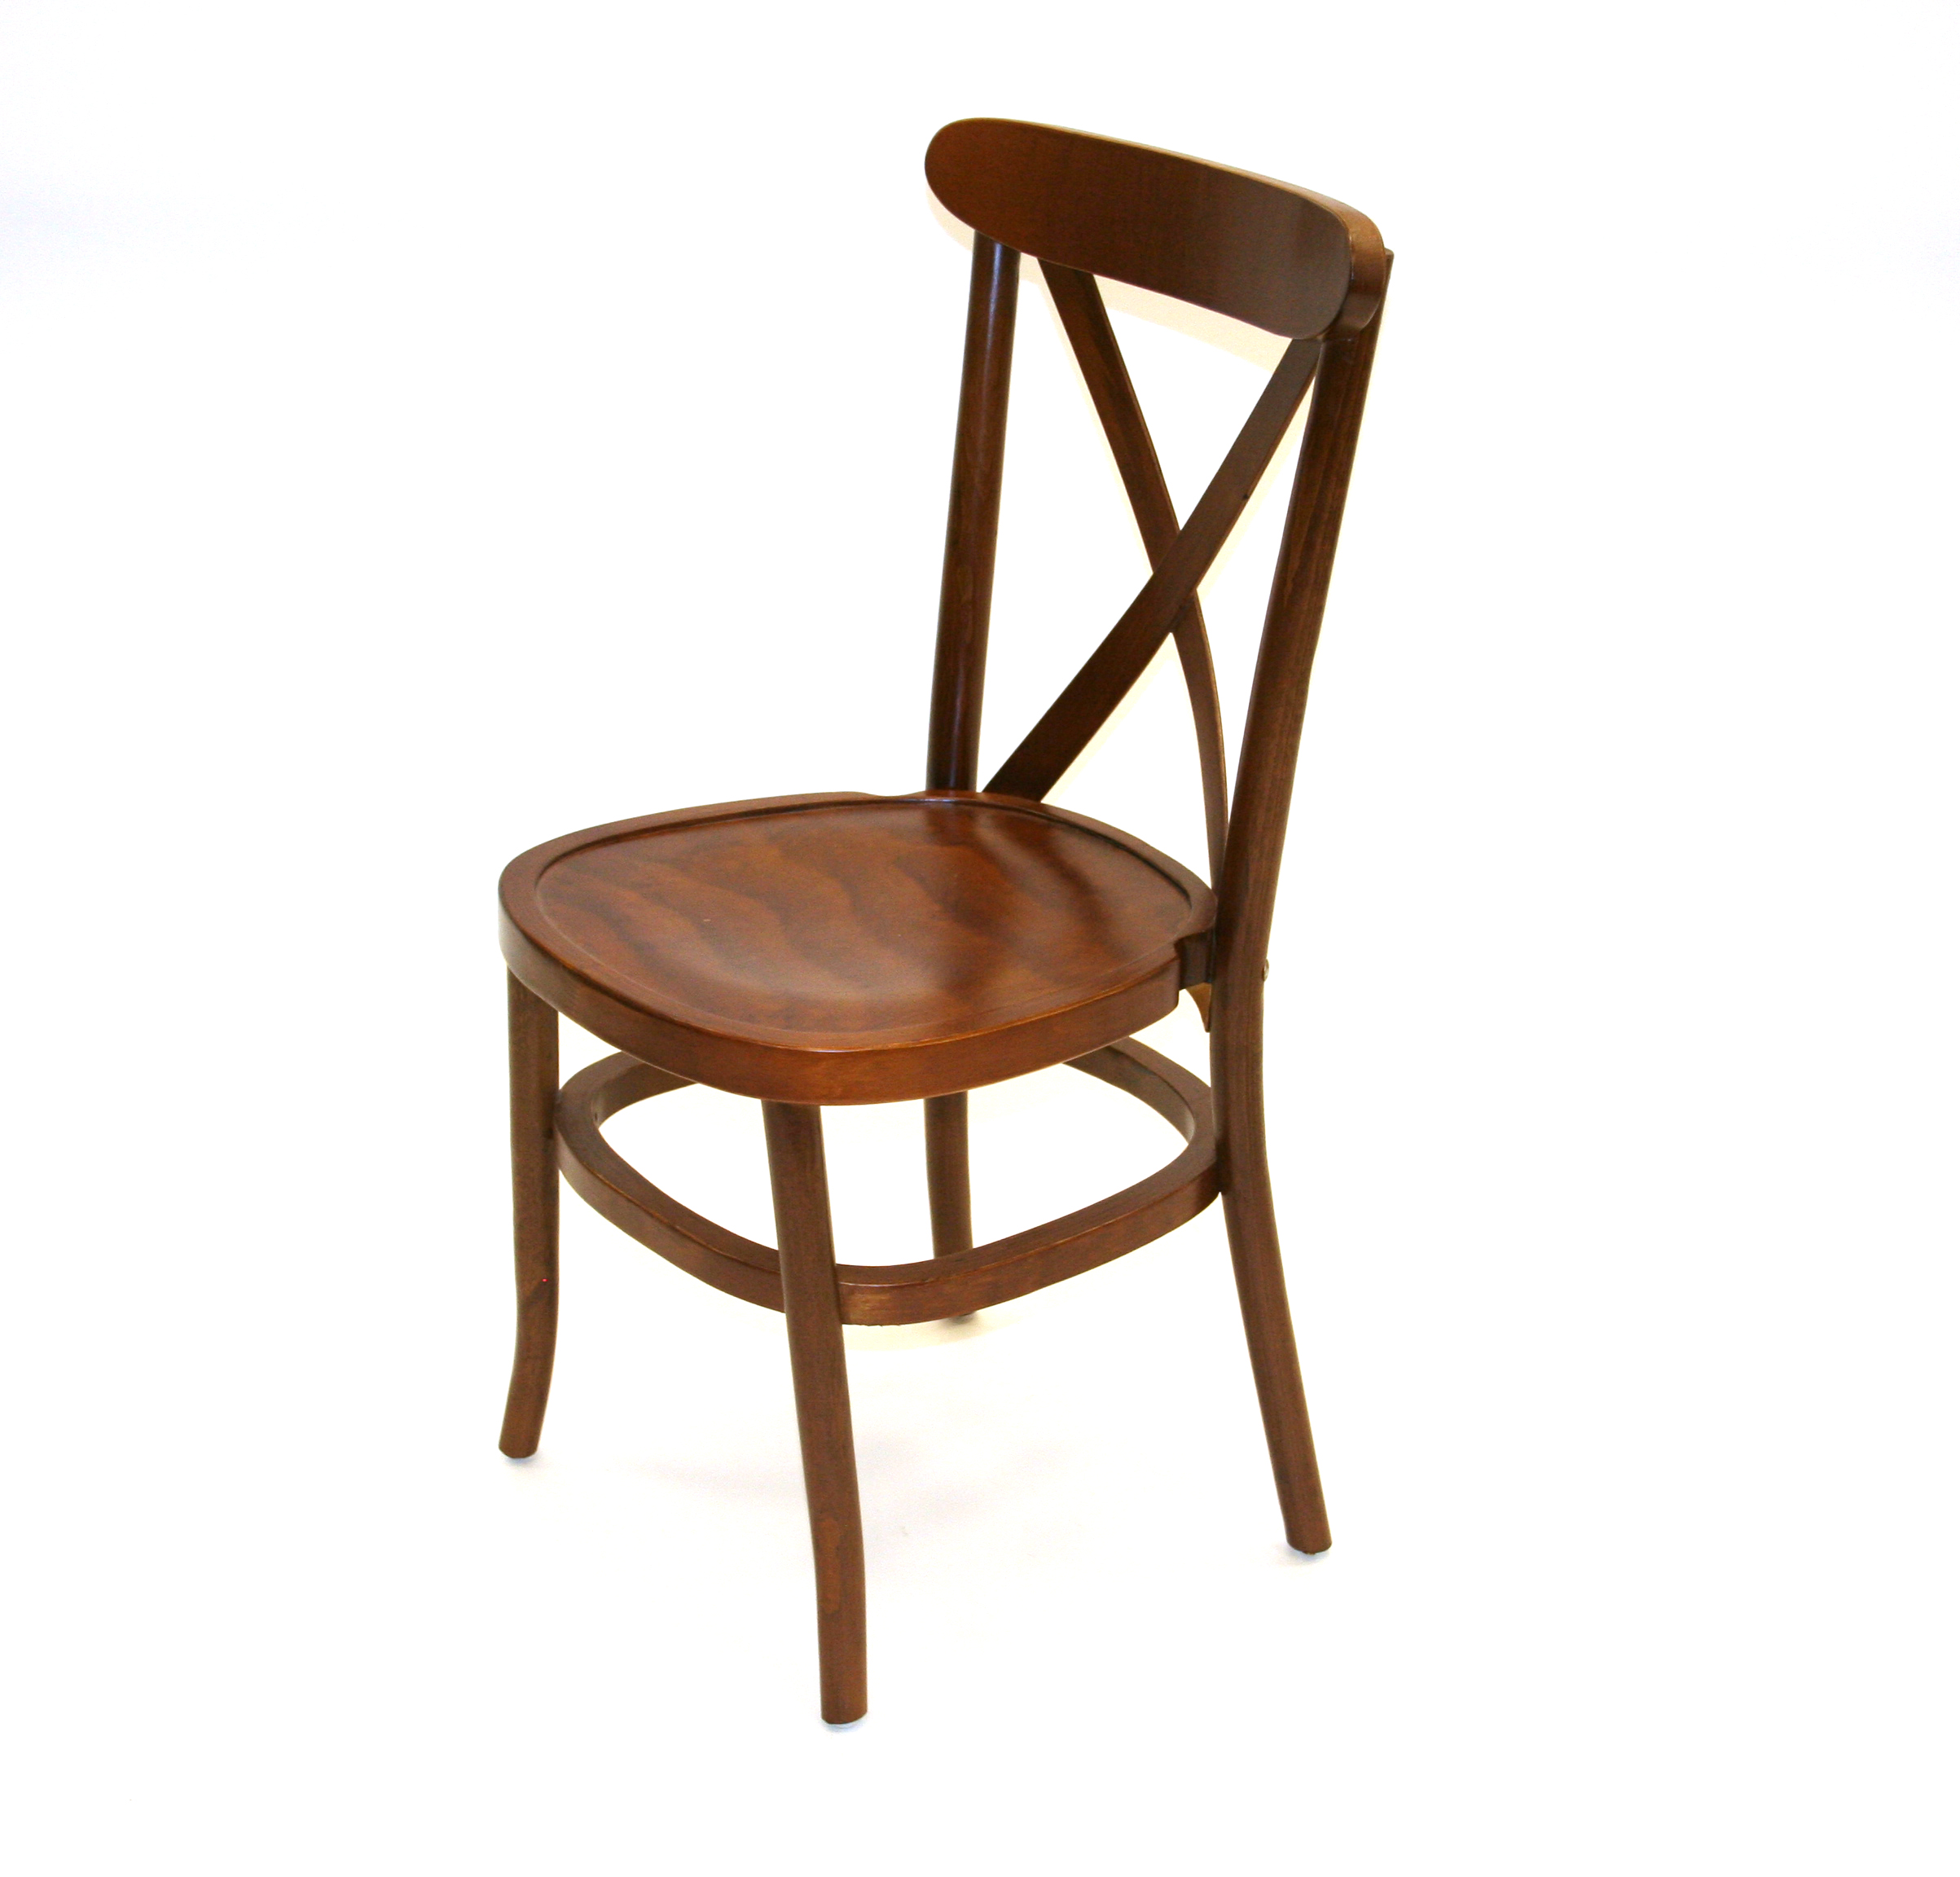 Traditional Wooden Cross Back Chairs - BE Furniture Sales